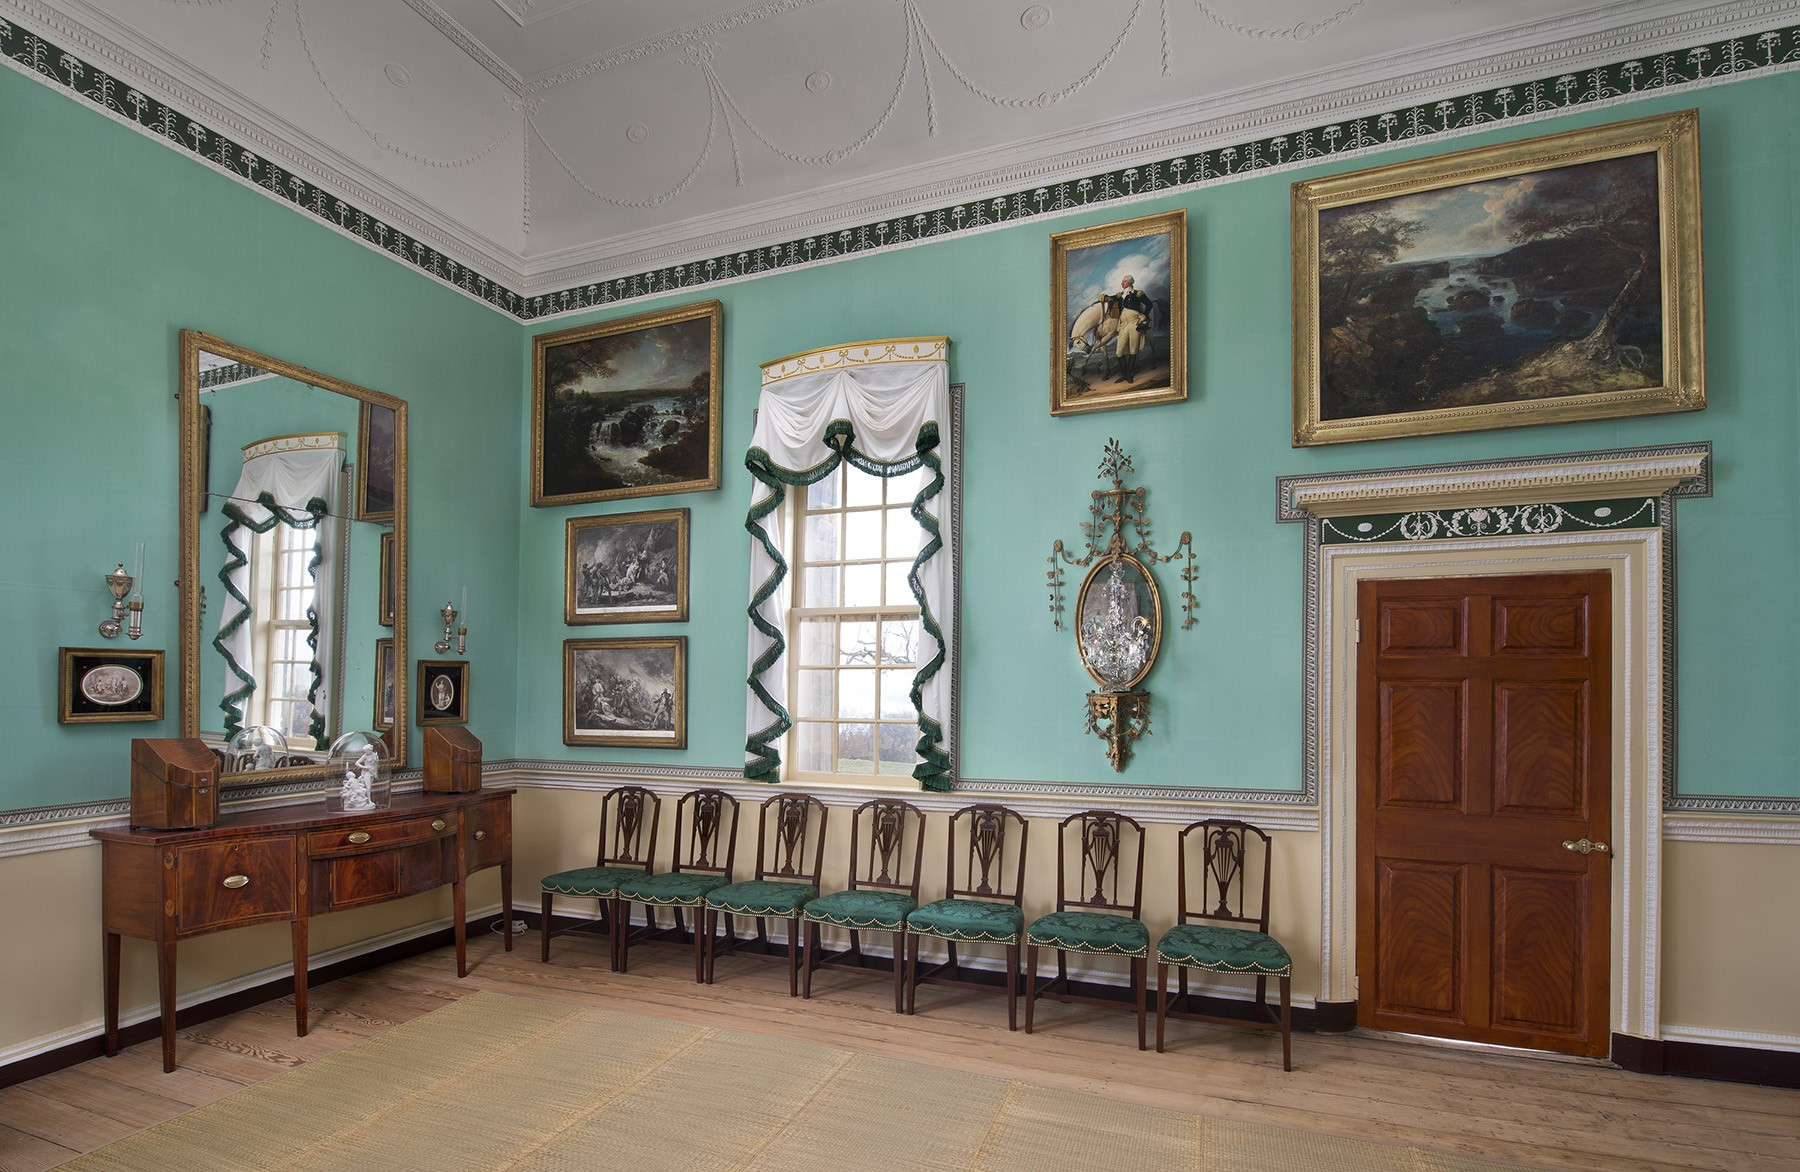 Interior salon at Mount Vernon, home of George Washington